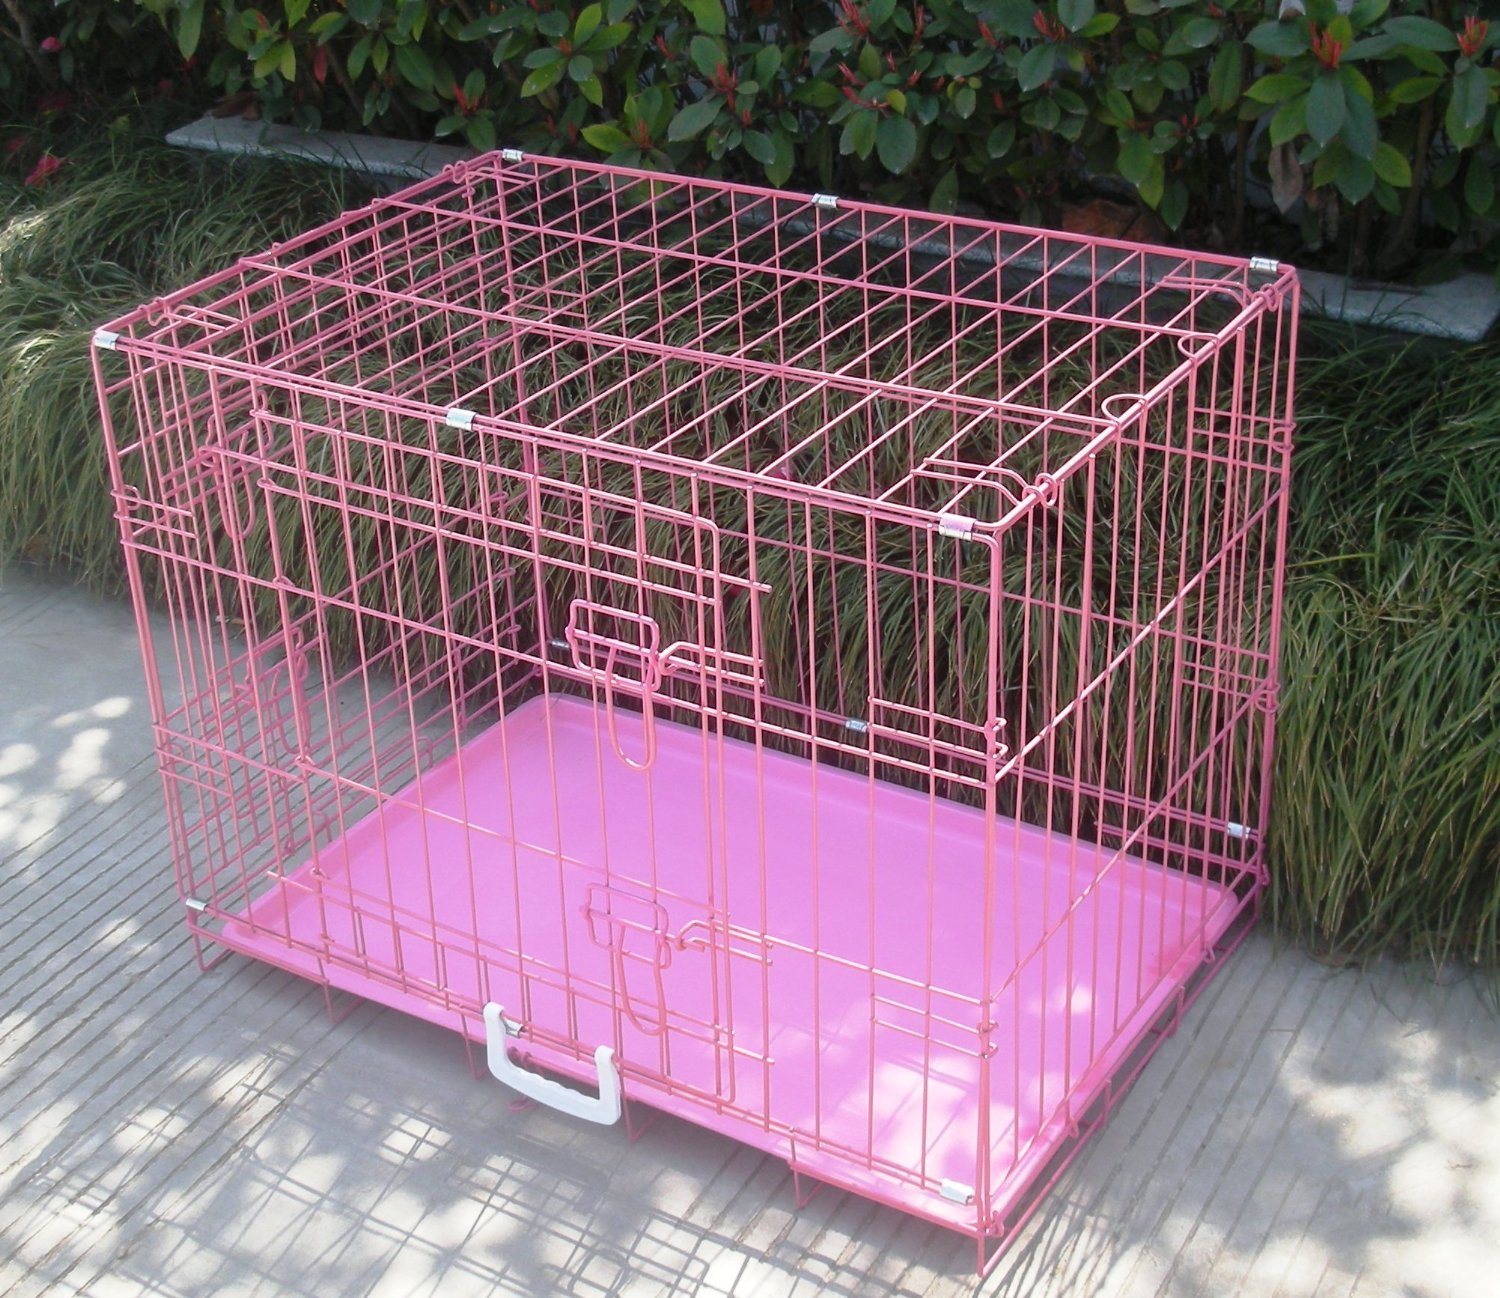 amazoncom  bestpet new pink pet folding suitcase dog cat crate  - amazoncom  bestpet new pink pet folding suitcase dog cat crate cage kennelpen with abs tray inch  kennel for cats  pet supplies